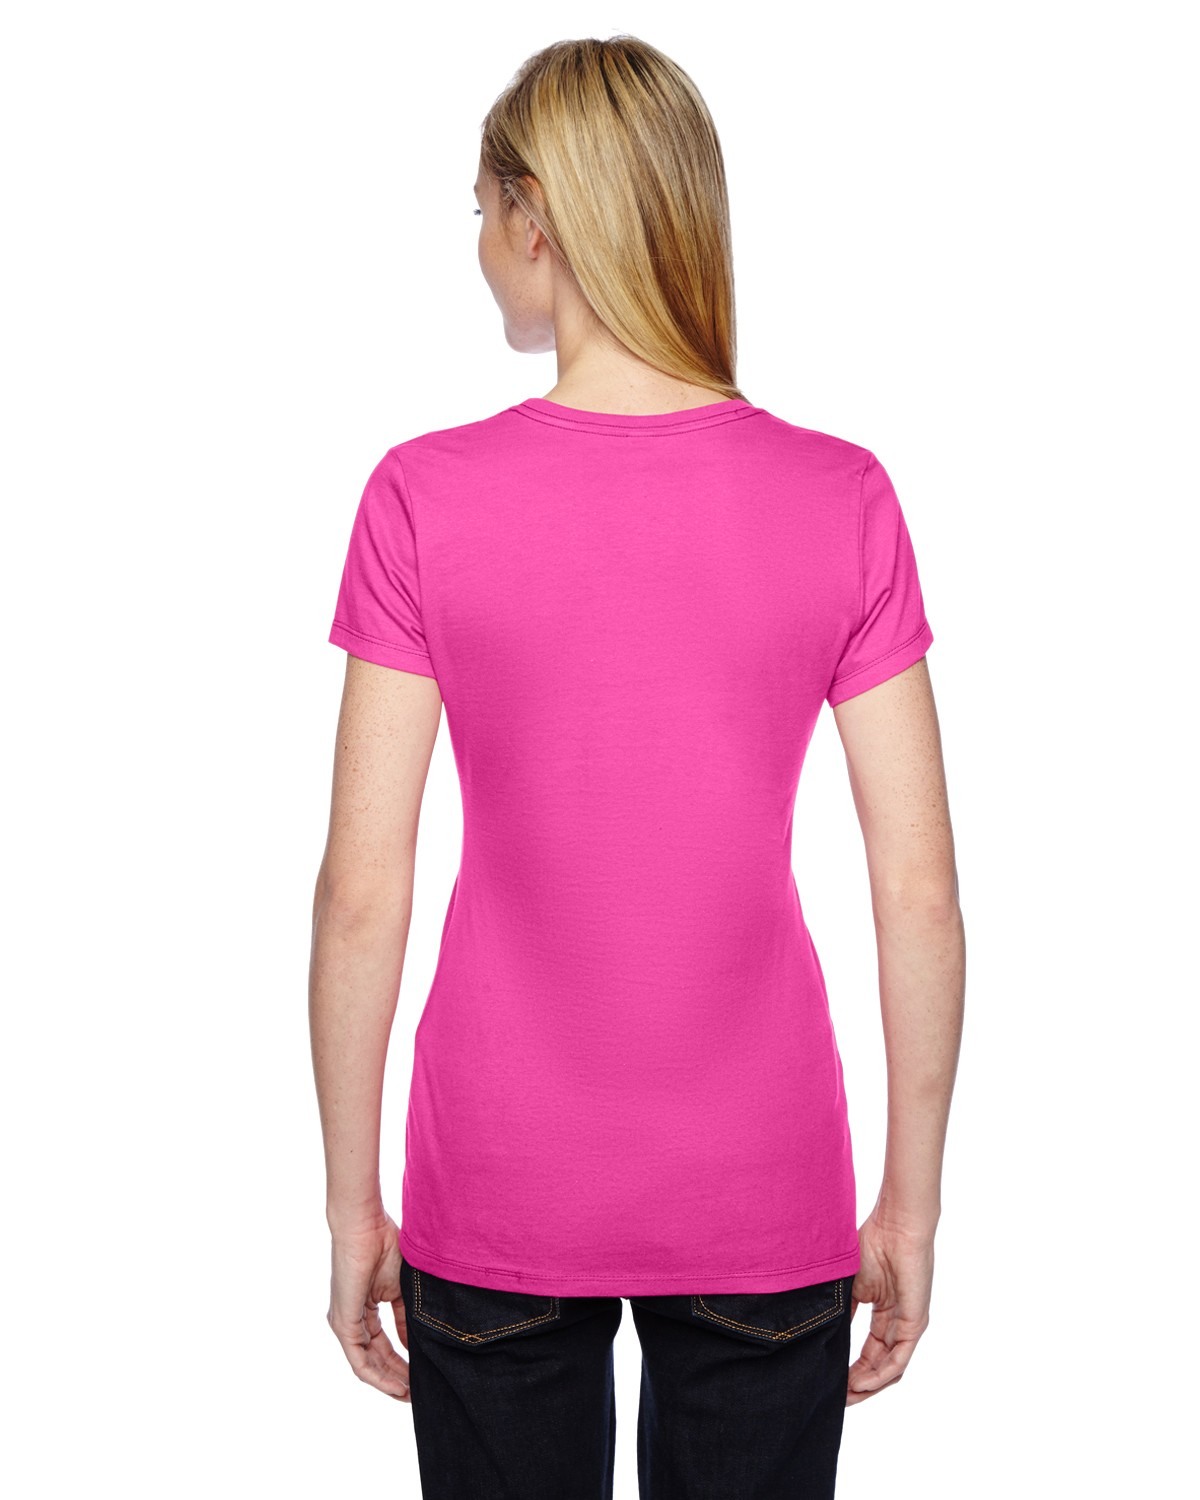 SSFJR Fruit of the Loom CYBER PINK